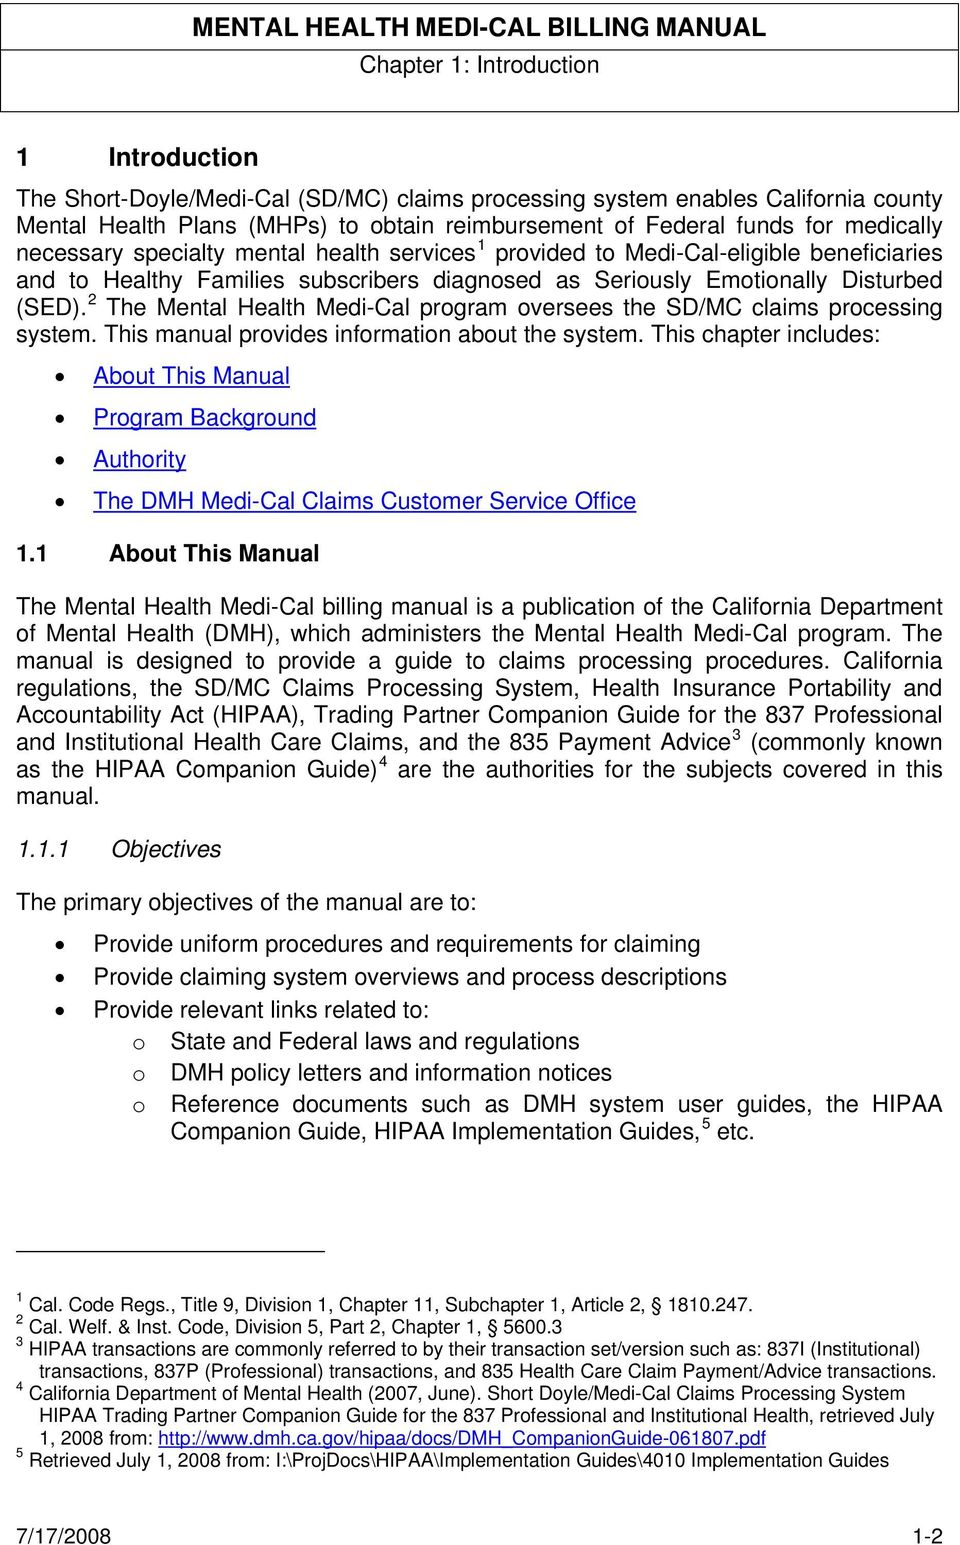 2 The Mental Health Medi-Cal program oversees the SD/MC claims processing  system